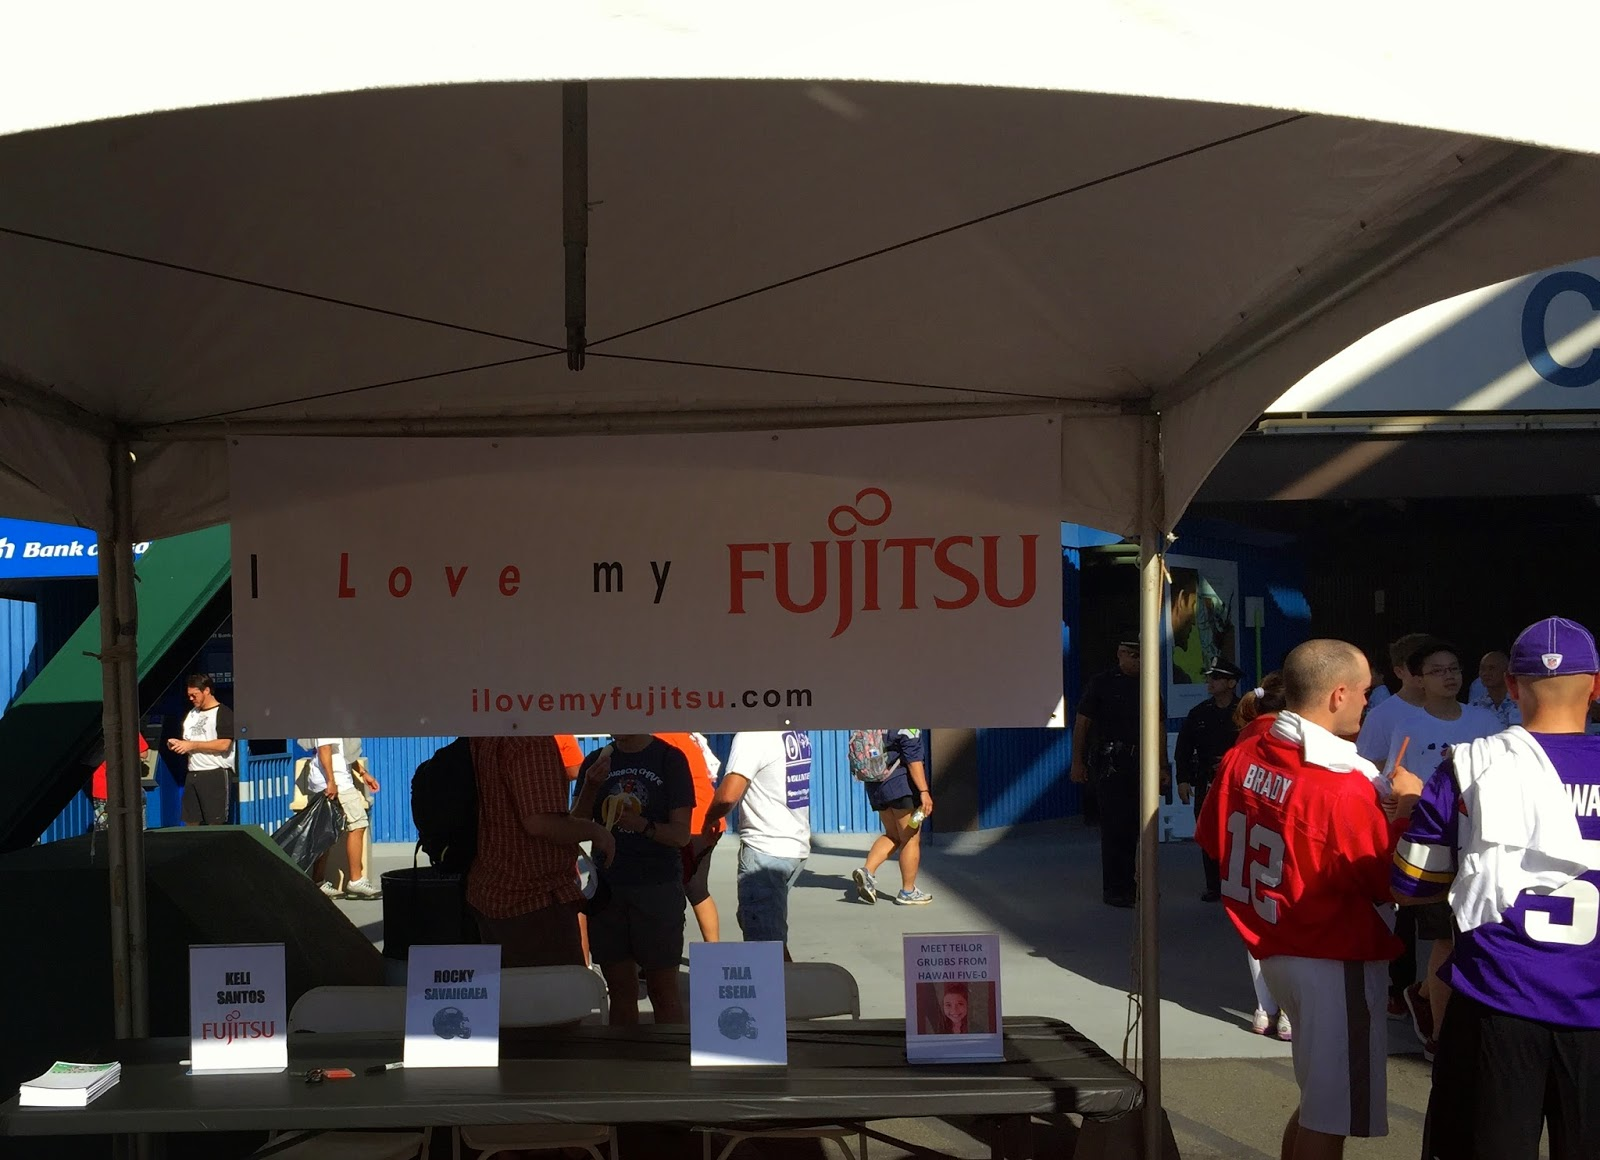 TASTE OF HAWAII: I LOVE MY FUJITSU AUTOGRAPH SESSION AT